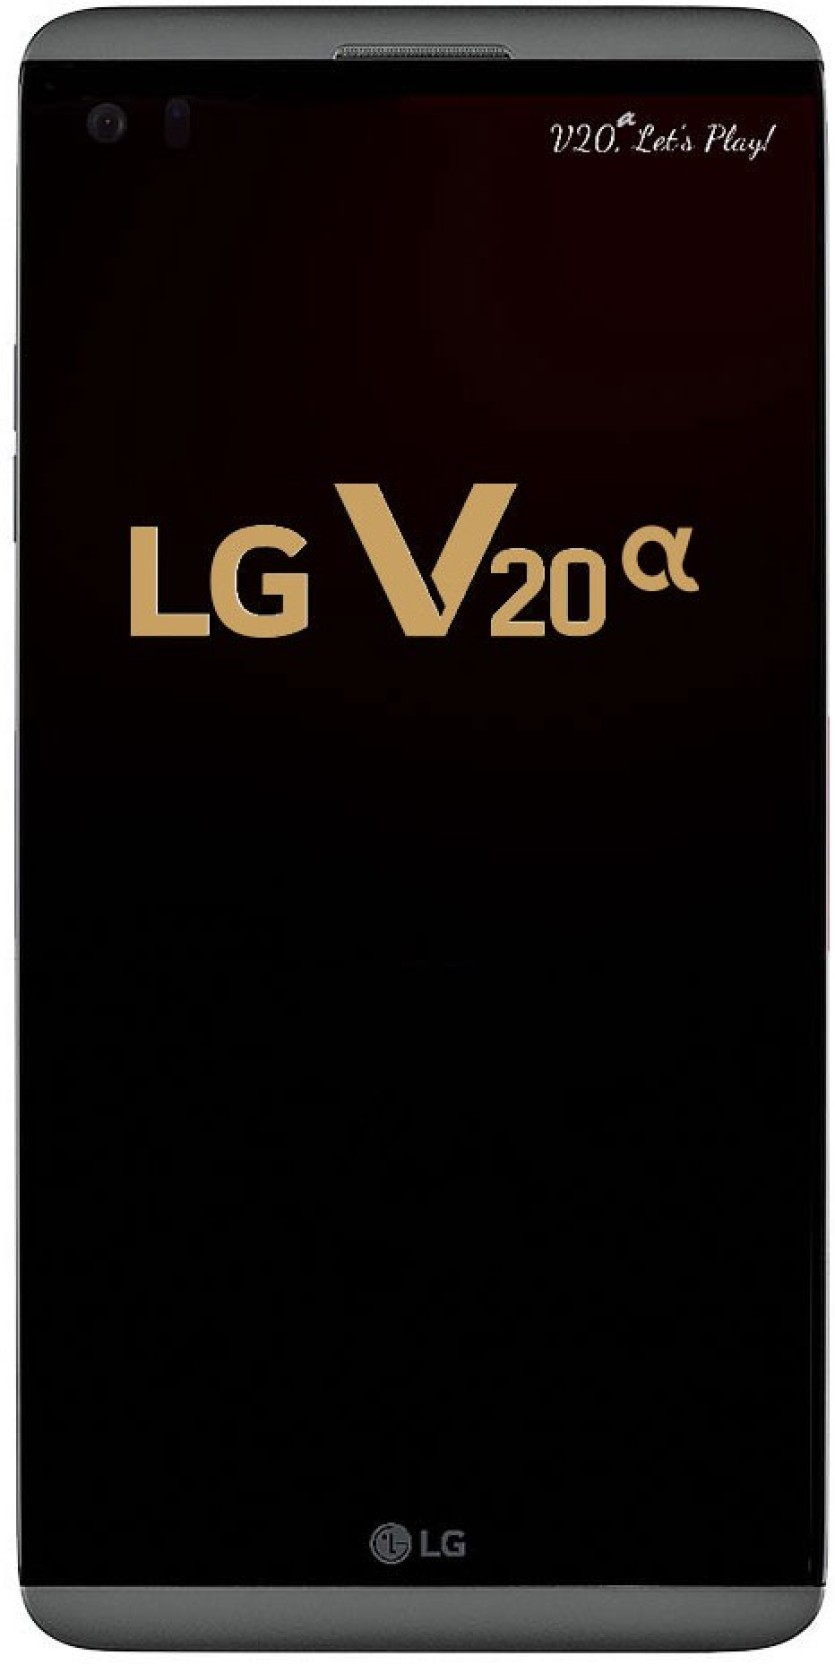 Lg V20a Titan 64 Gb Online At Best Price Only On L20 4gb Black Add To Cart